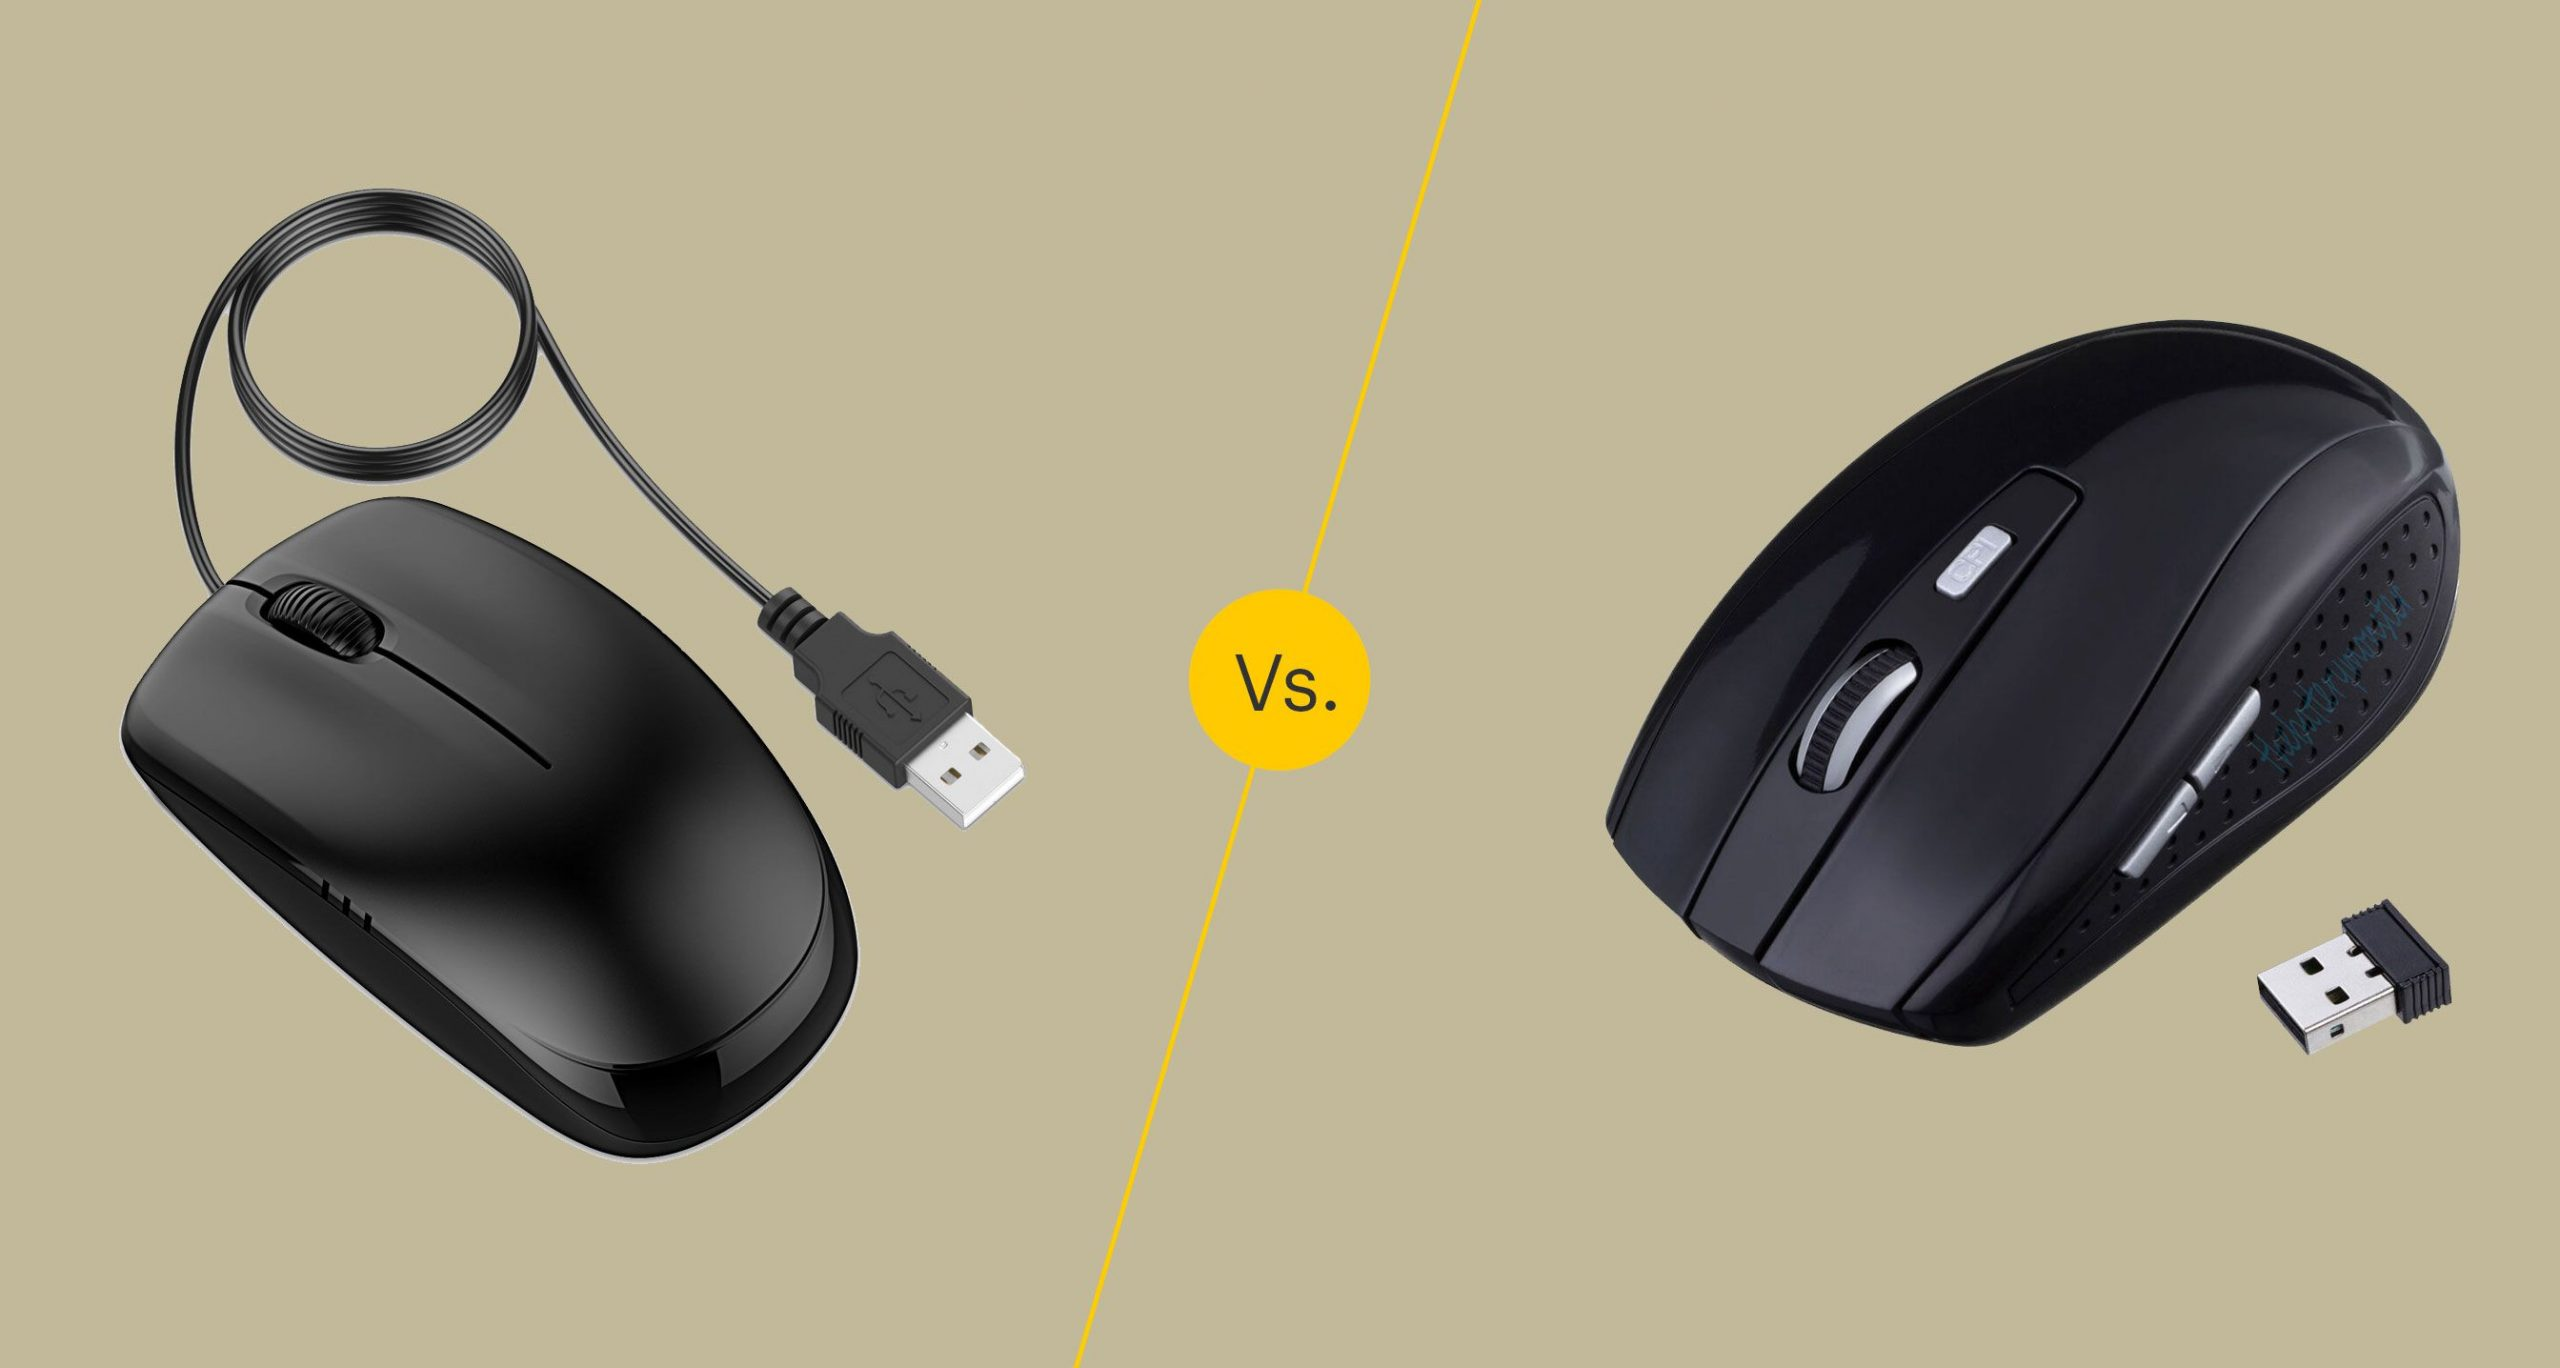 Wired-vs-Wireless-Mouse-